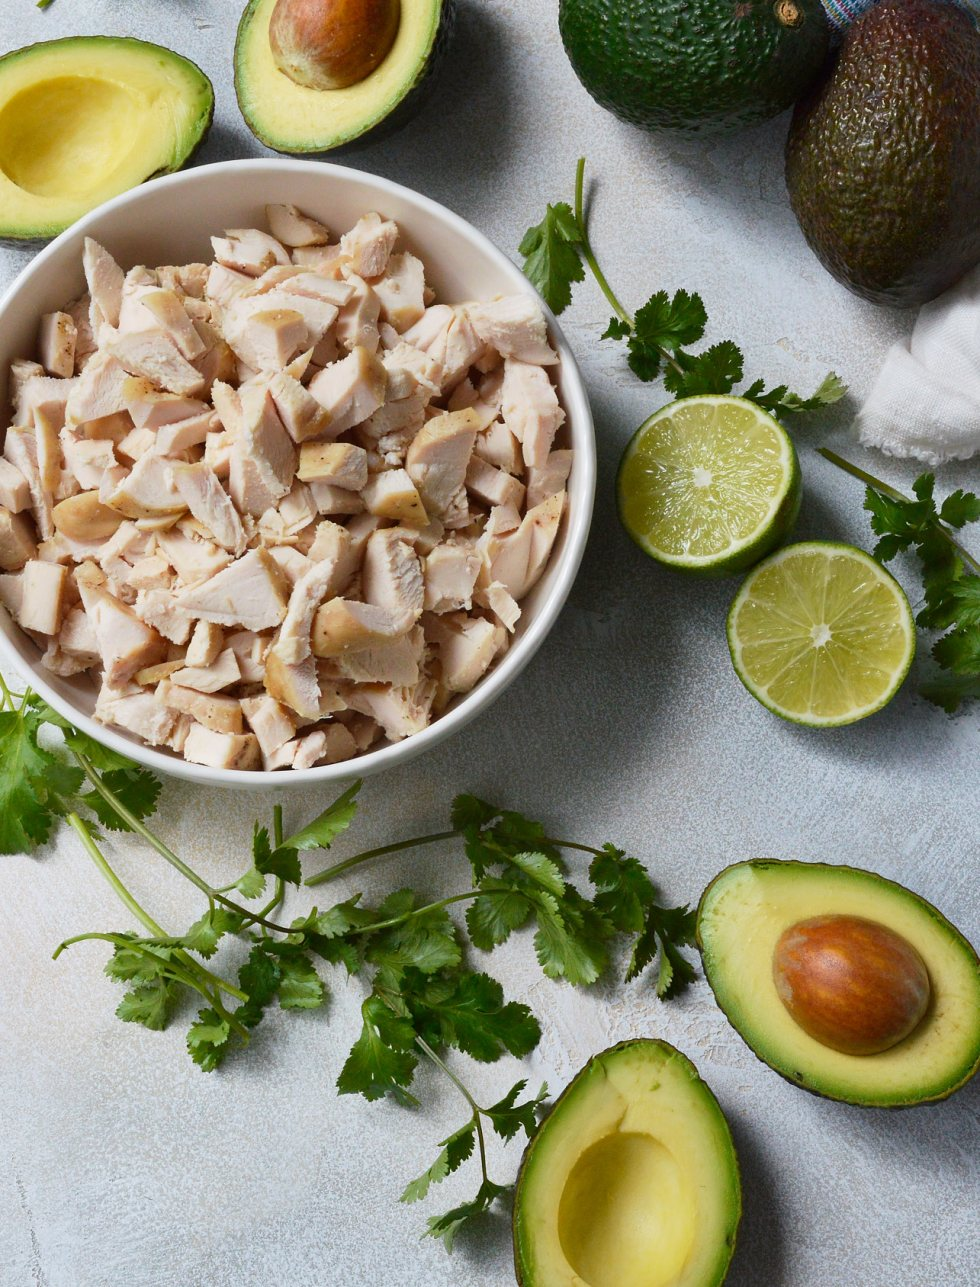 Wanting to eat healthy and nutritious without giving up your favorite foods? This Bacon Avocado Chicken Salad Recipe is full of flavor, healthy fats and is Whole30 friendly.